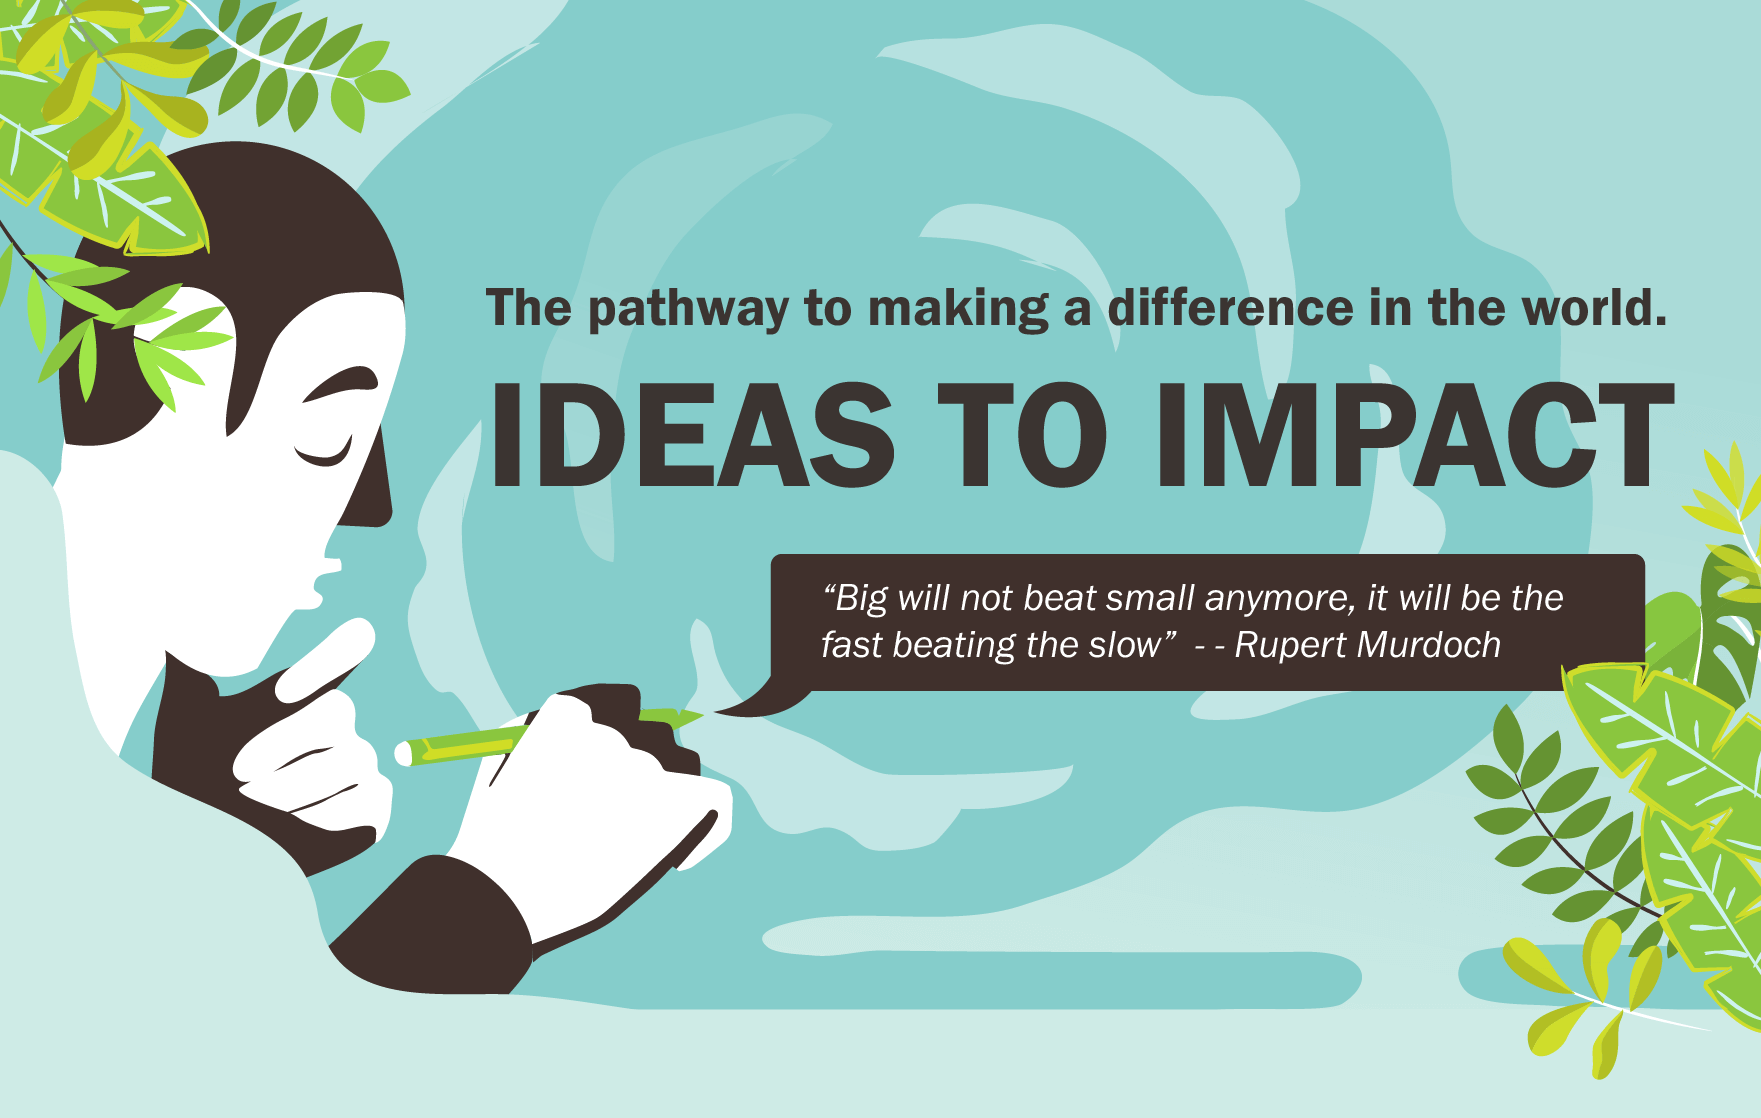 Infographic|綠色和平組織 IDEAS TO IMPACT